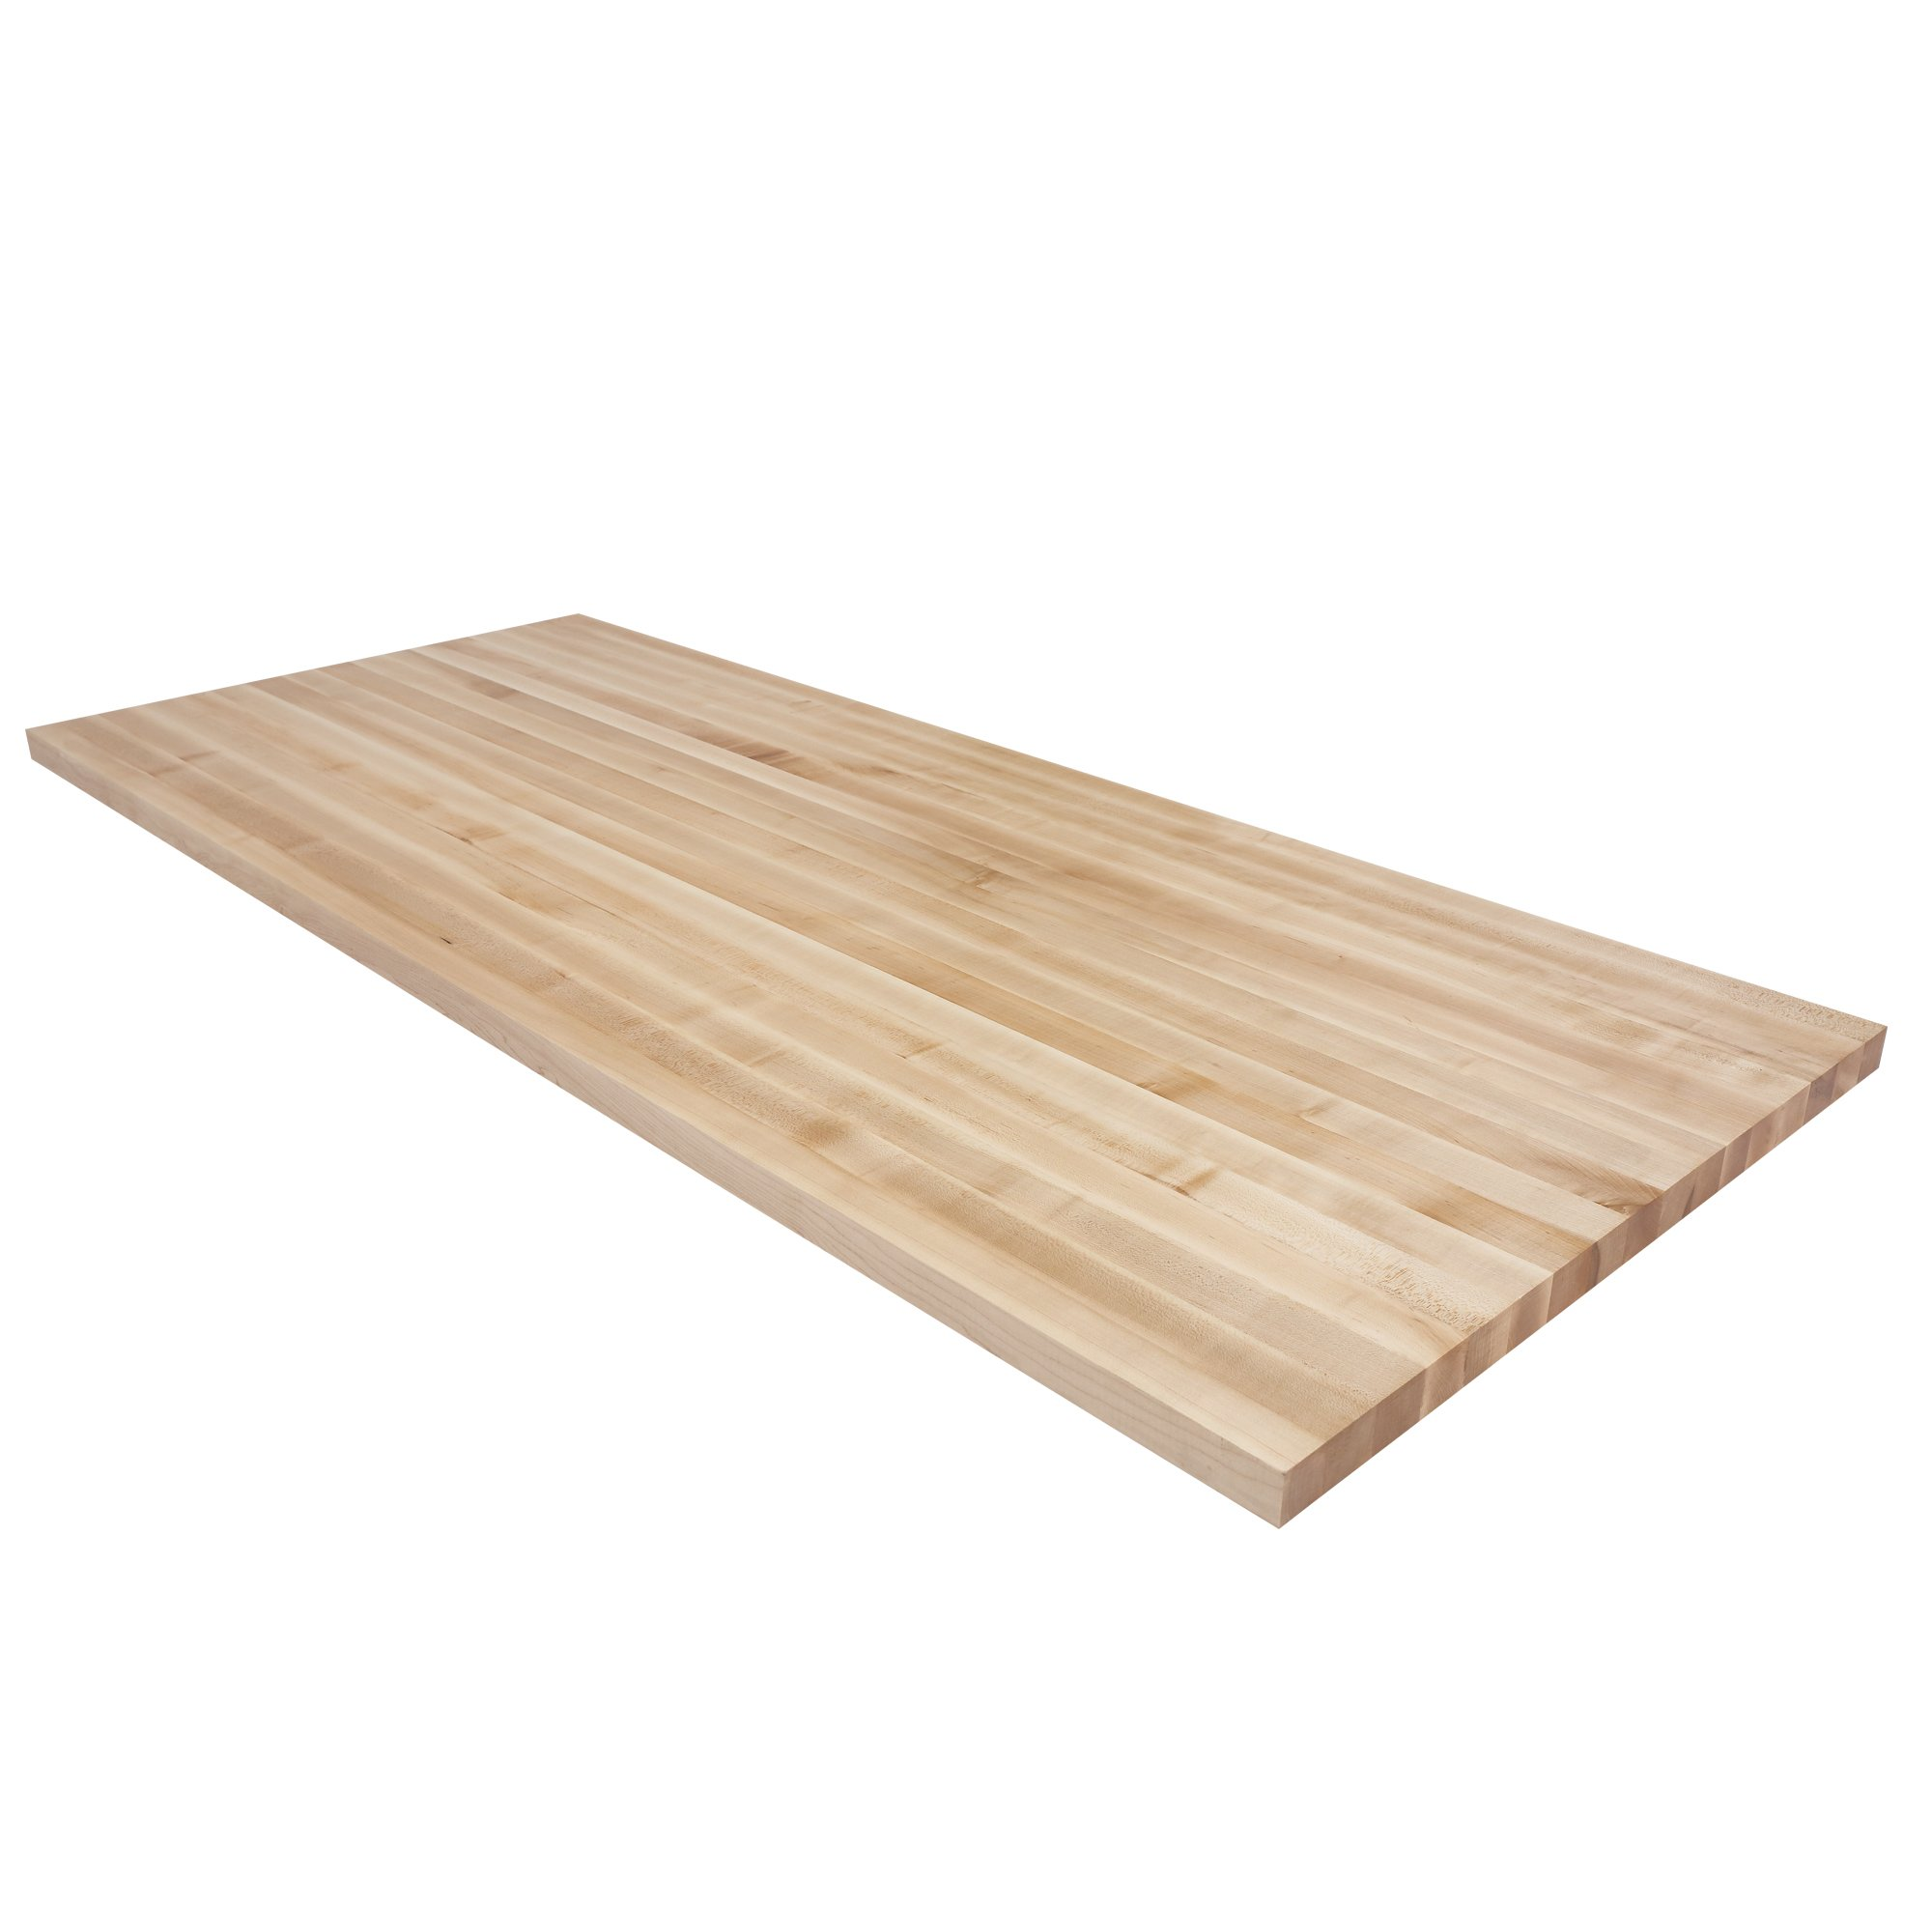 Wood Welded Maple Butcher Block Island Top (84'' x 30'' x 1-1/2'')